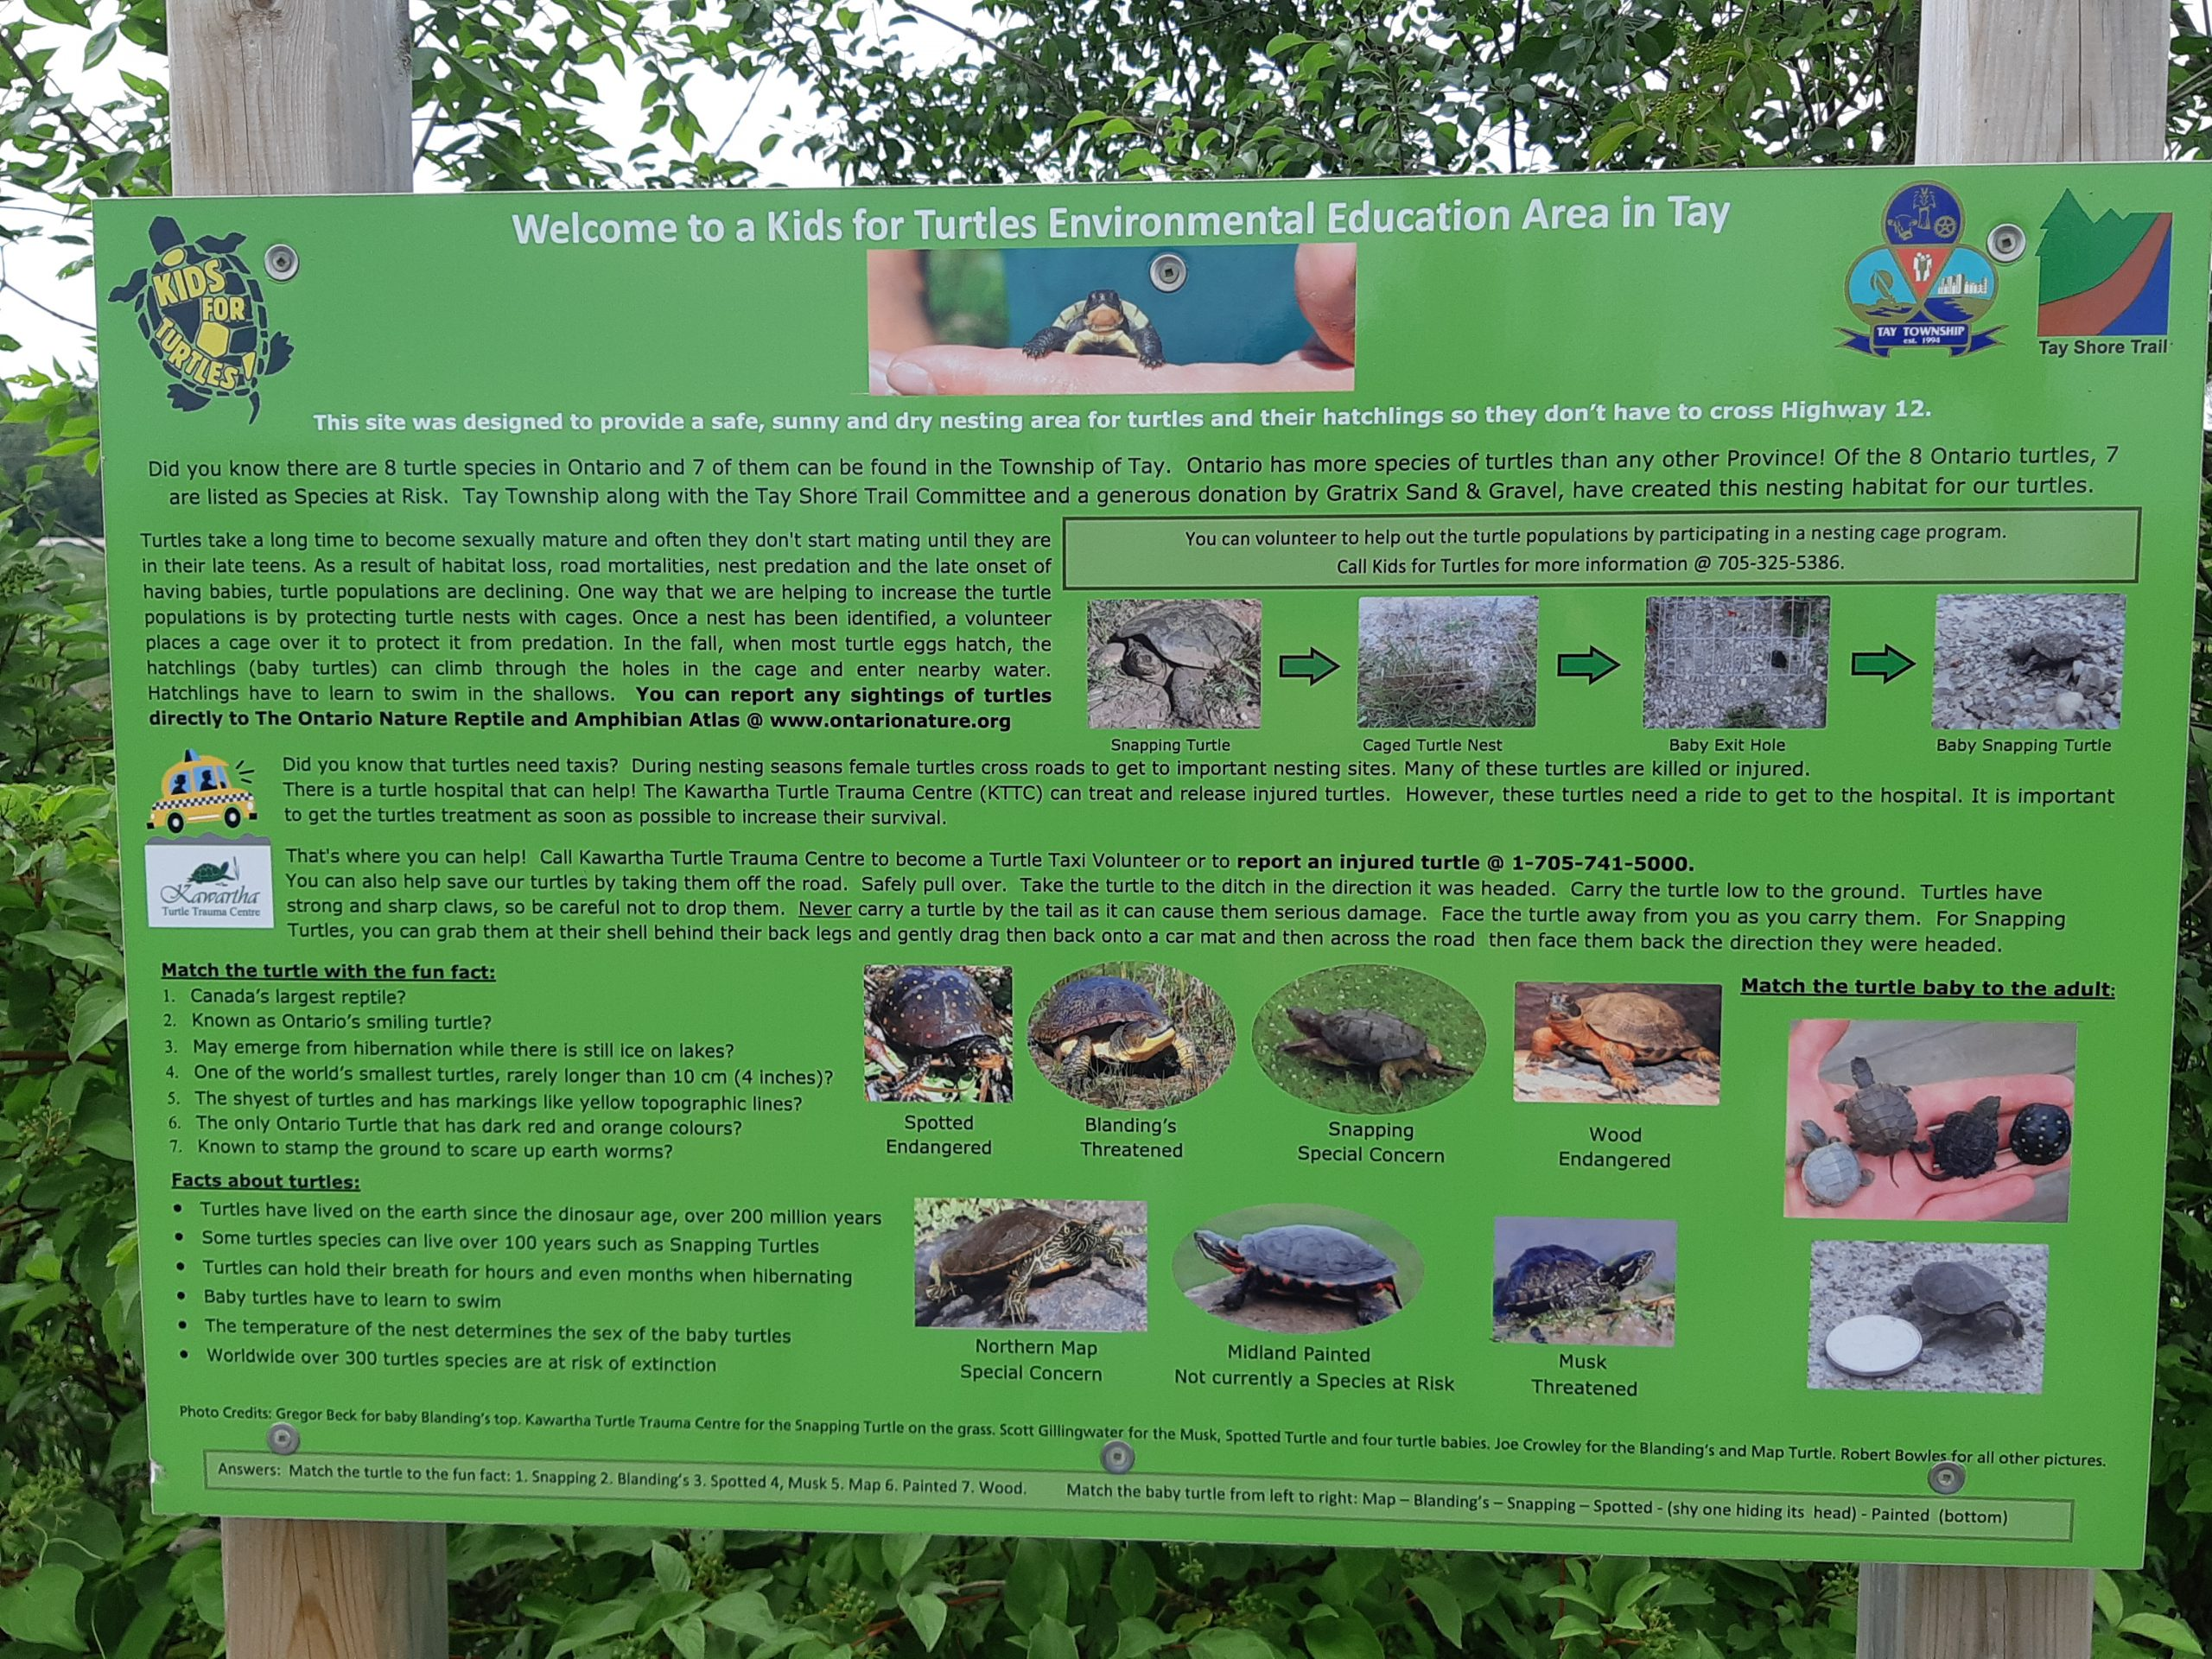 Turtle information on the Tay Trail